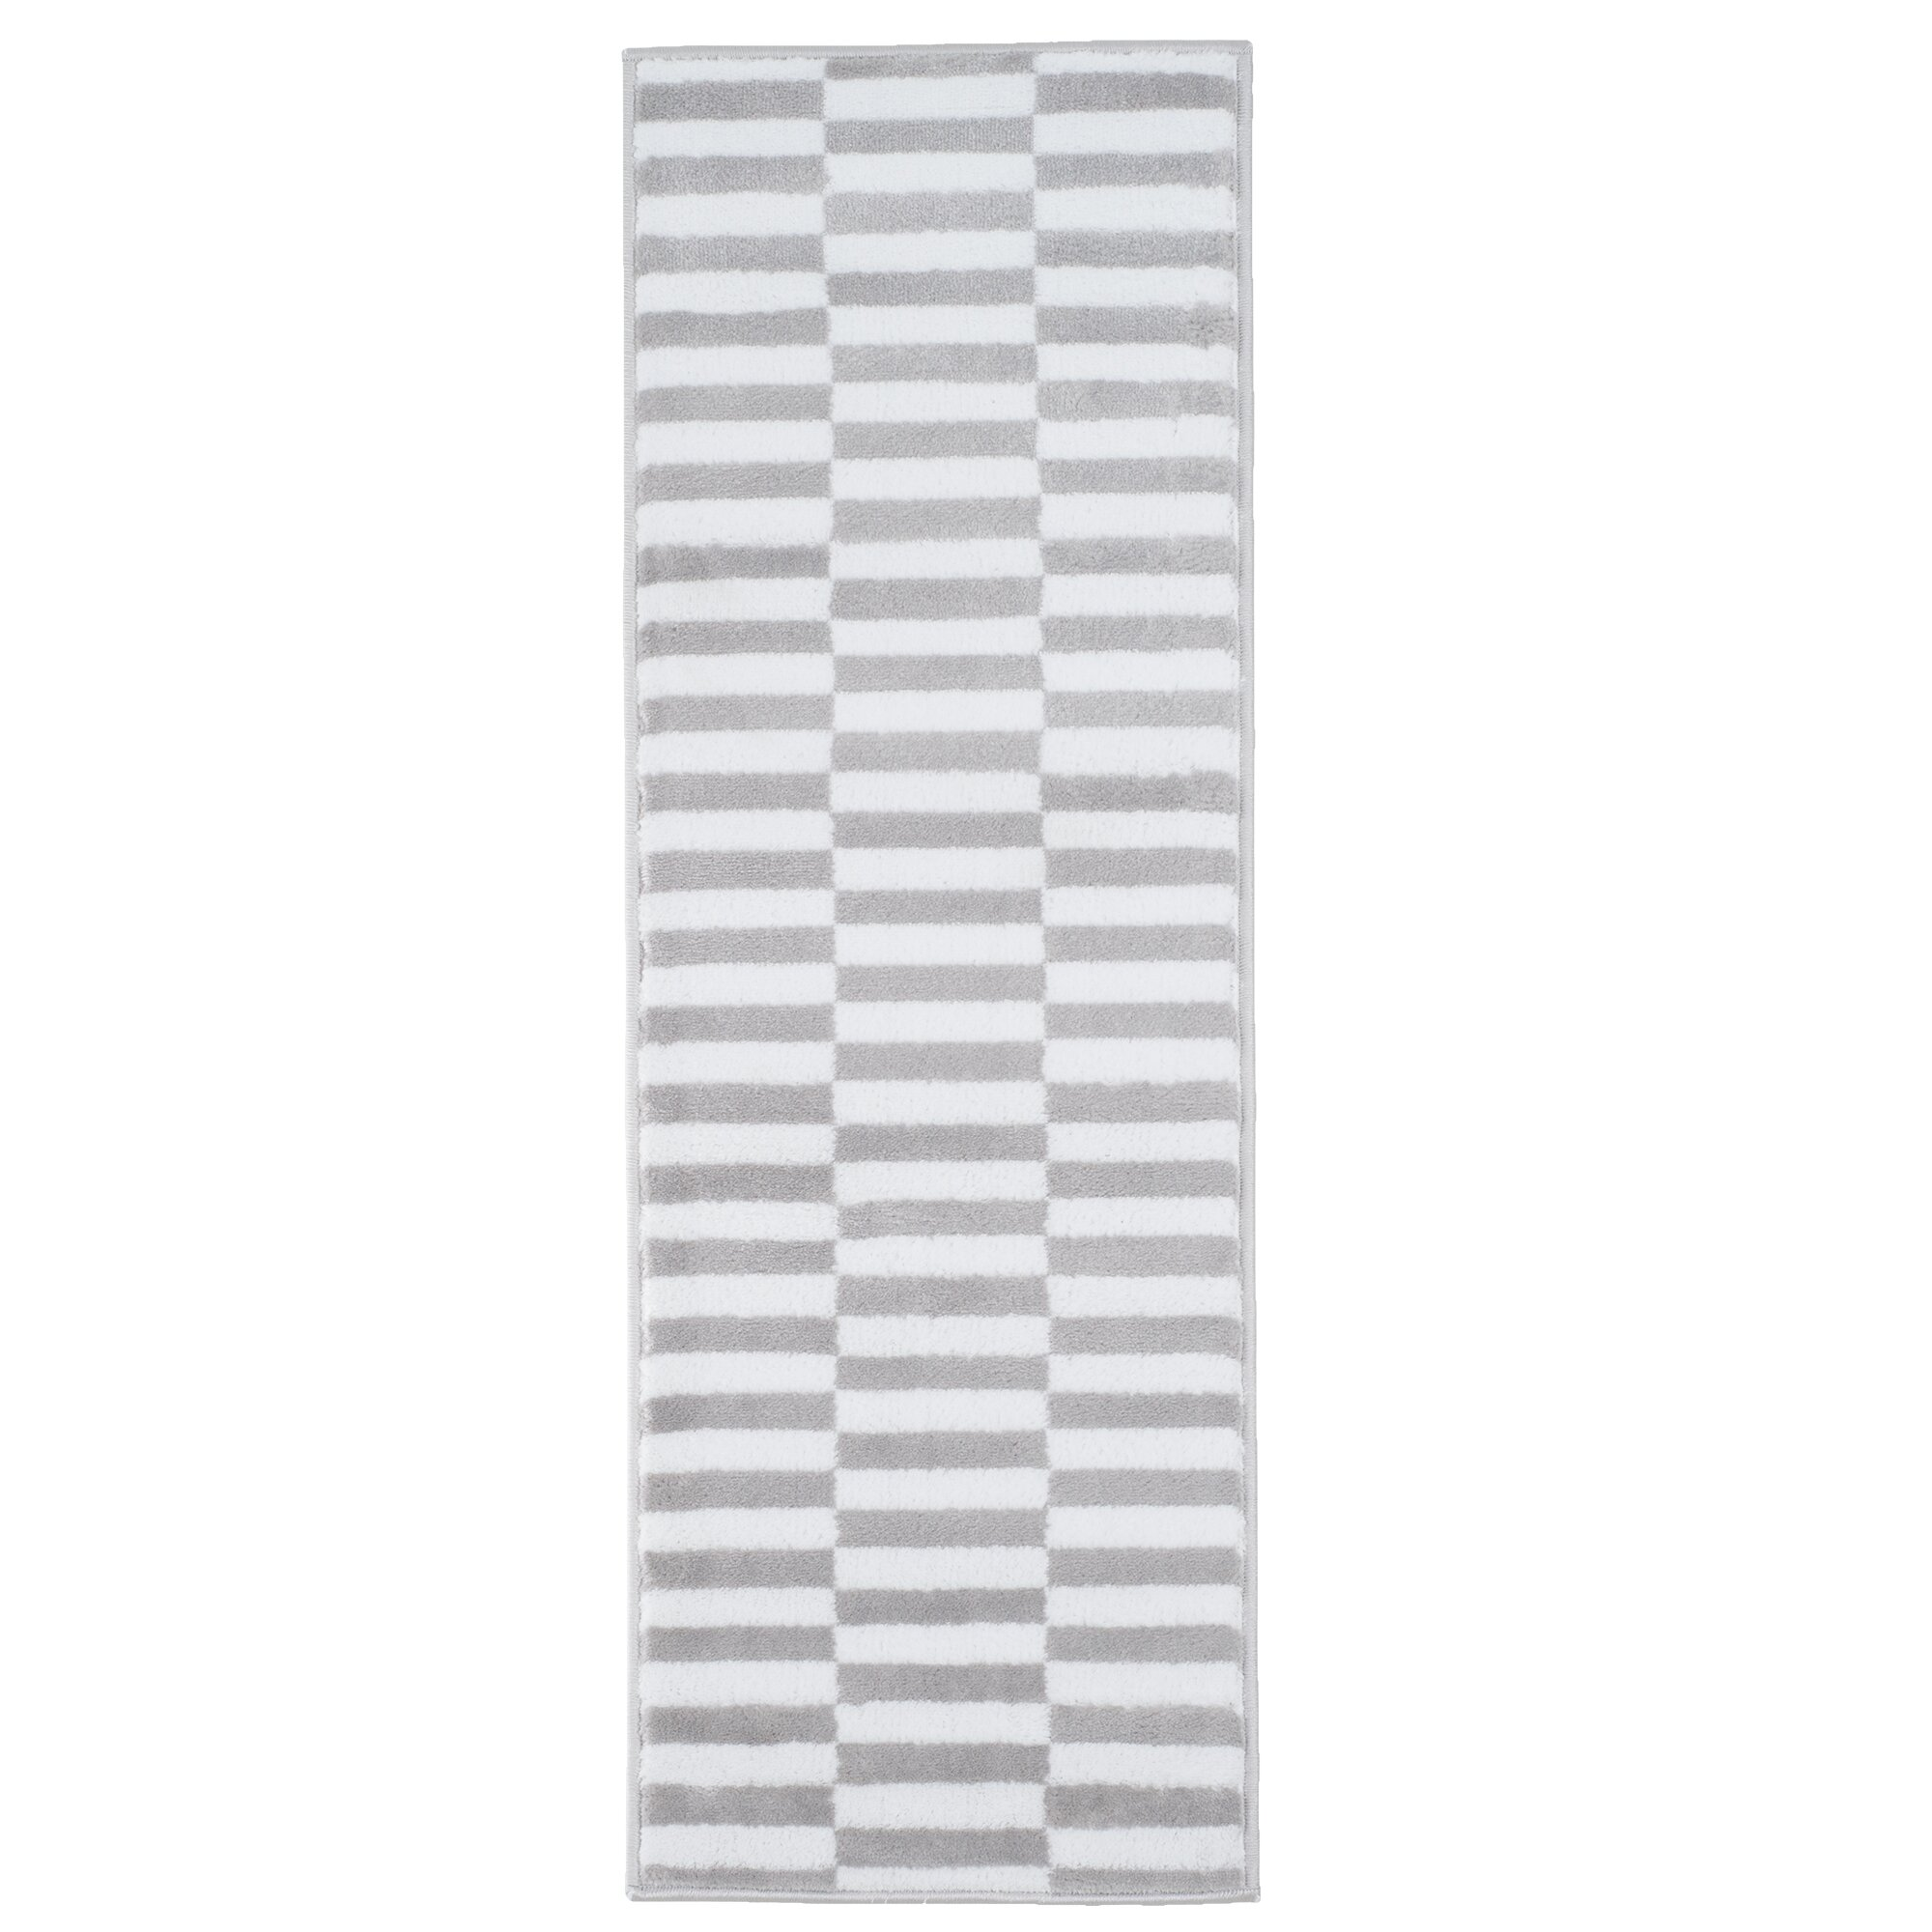 Checked Black Grey Rug: Lavish Home Grey & White Checkered Stripes Area Rug